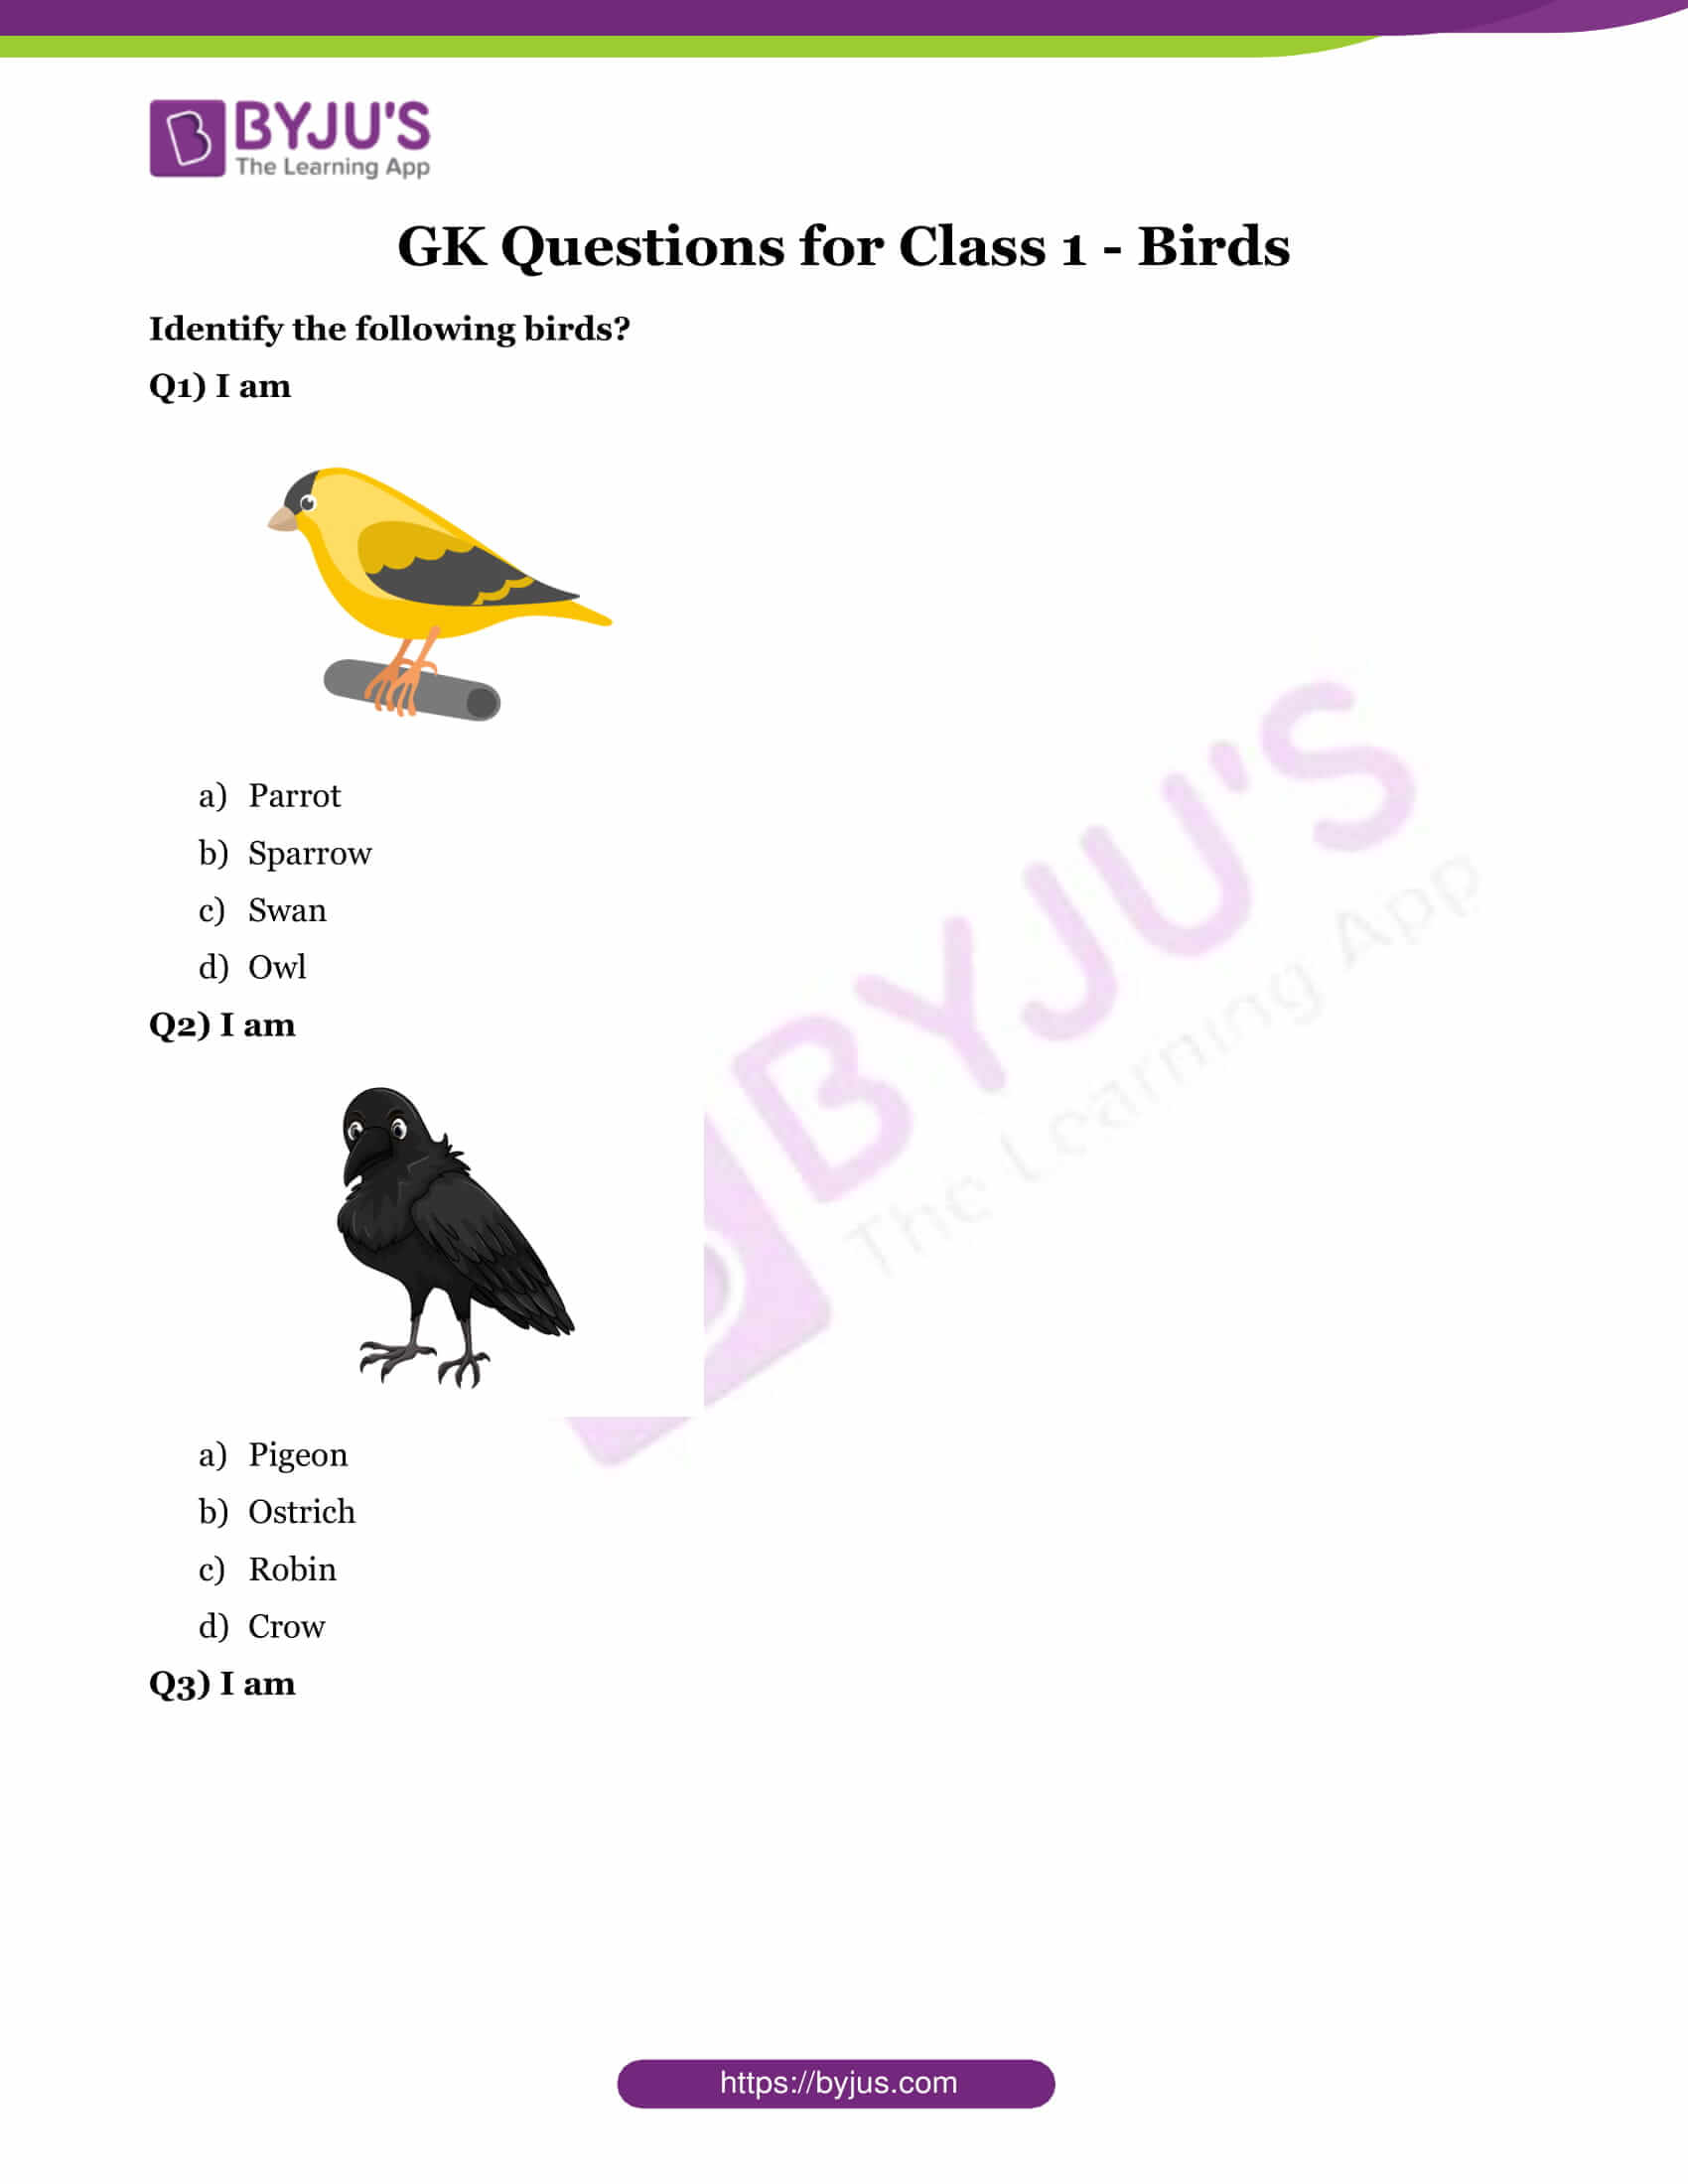 GK Questions for Class 1 - Birds